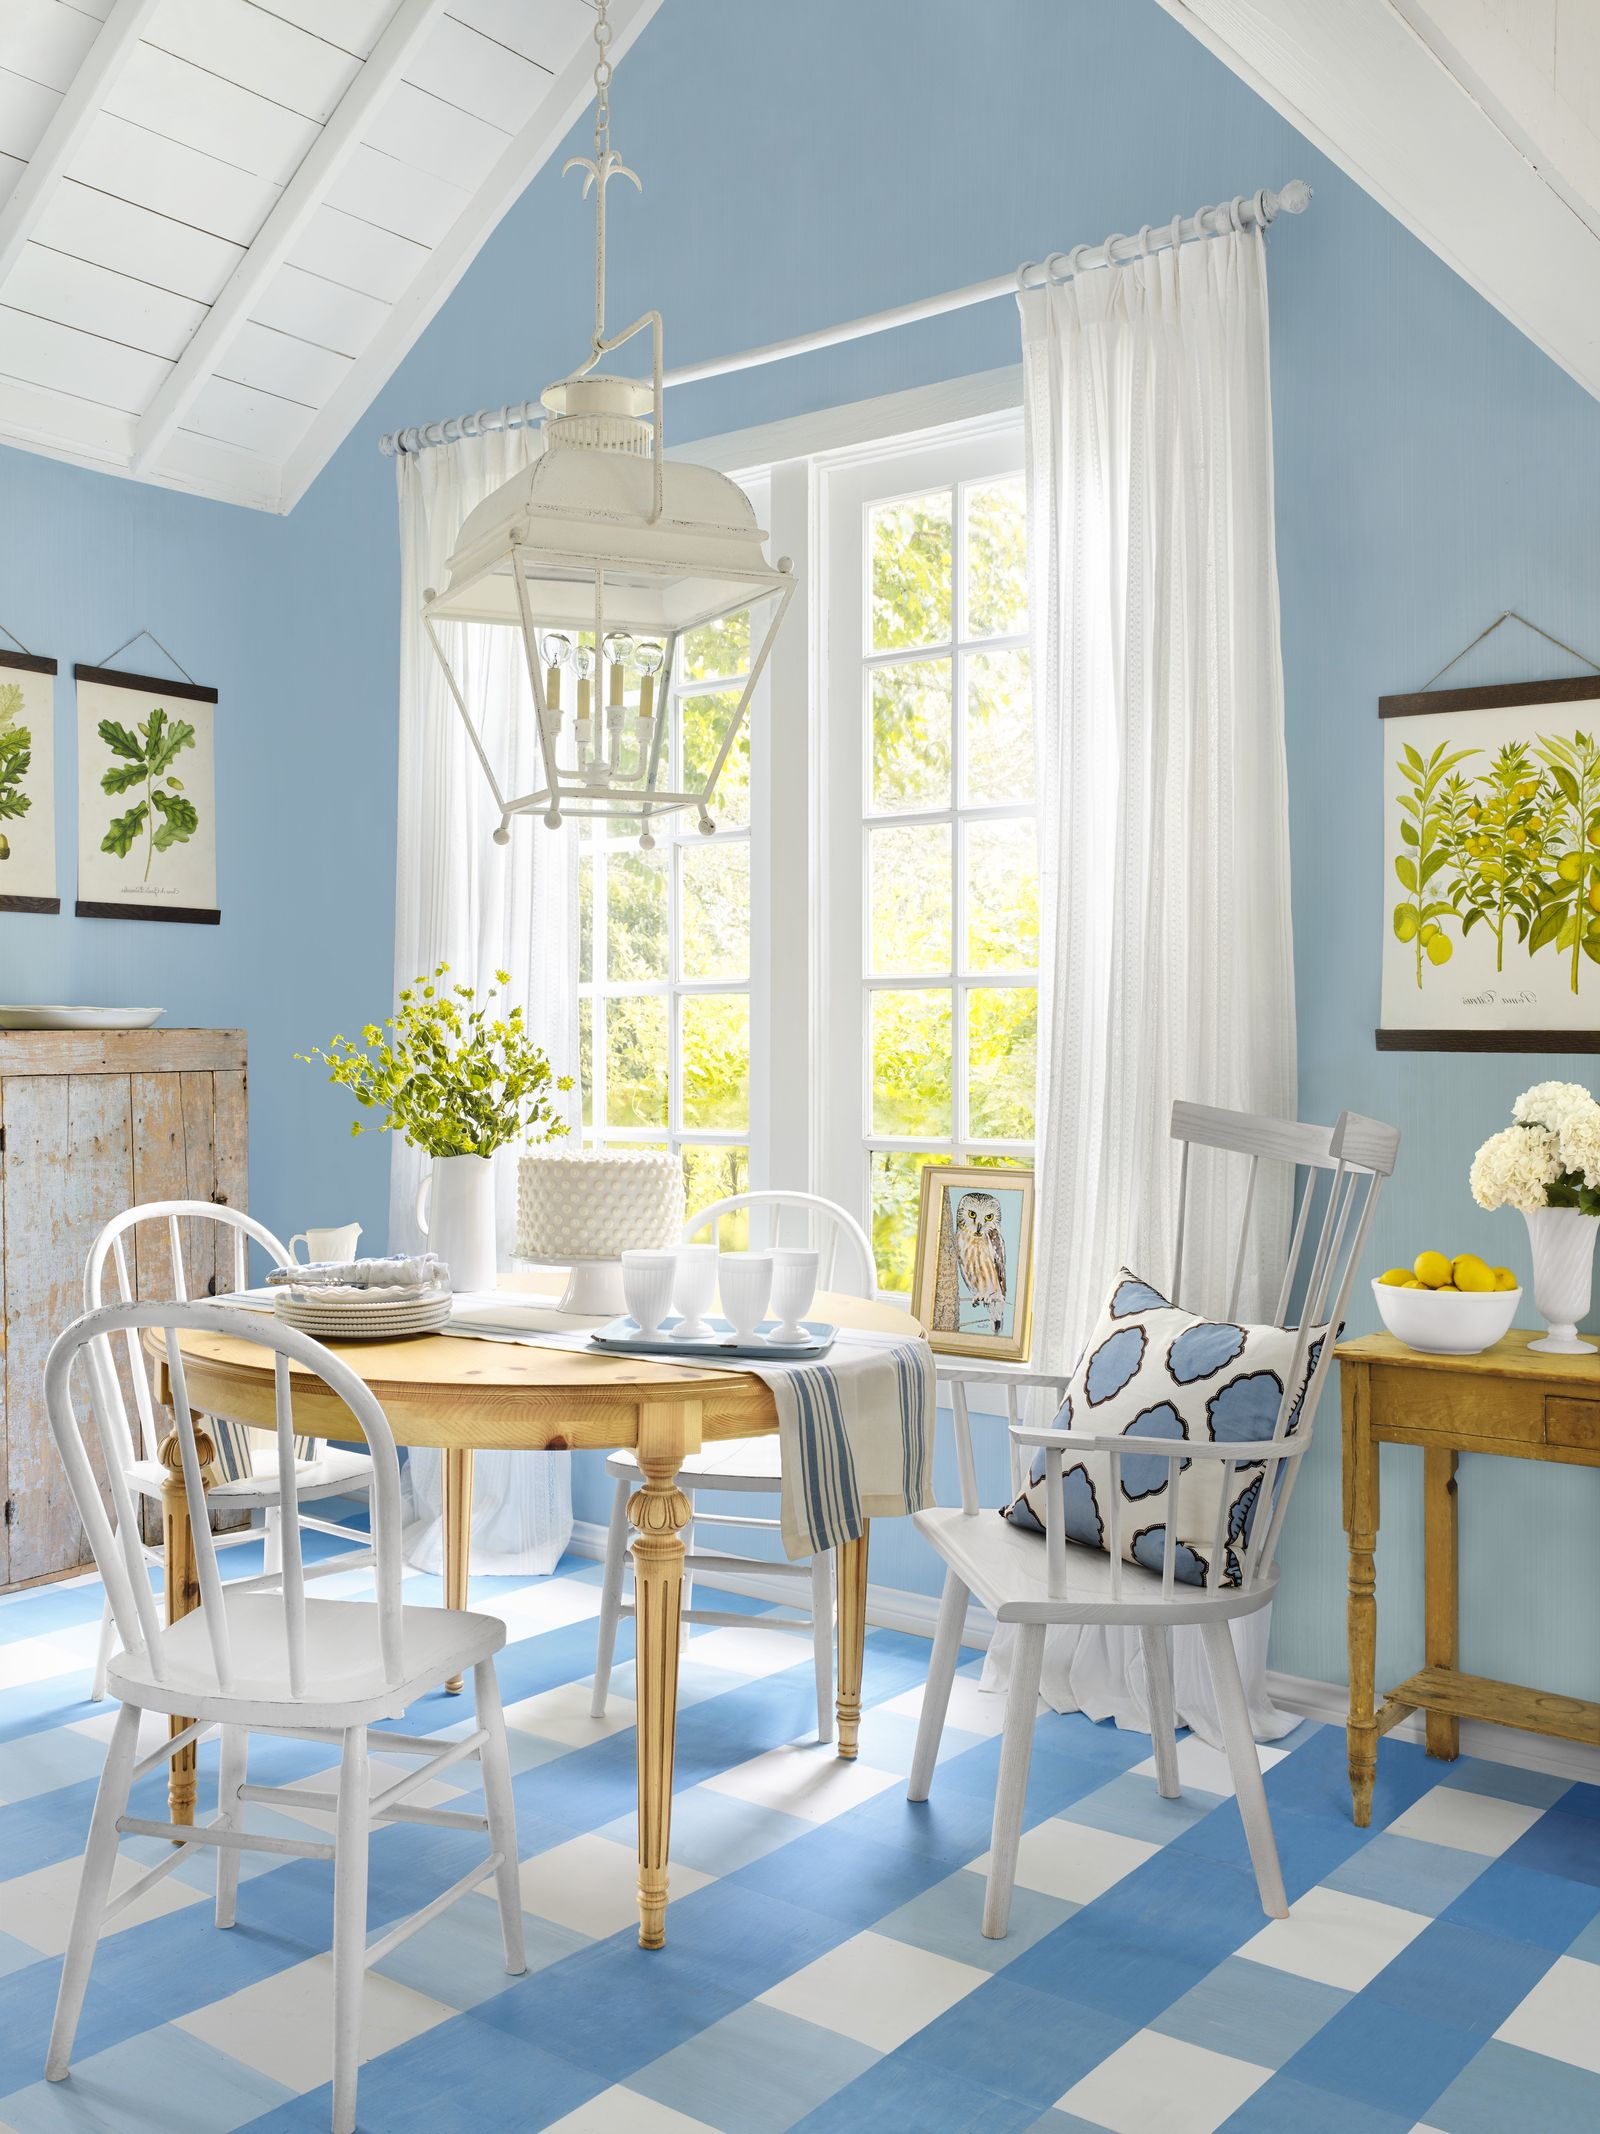 White and blue plaid painted floors Pristine Painted Floor Ideas To Have A Masterpiece Presentation